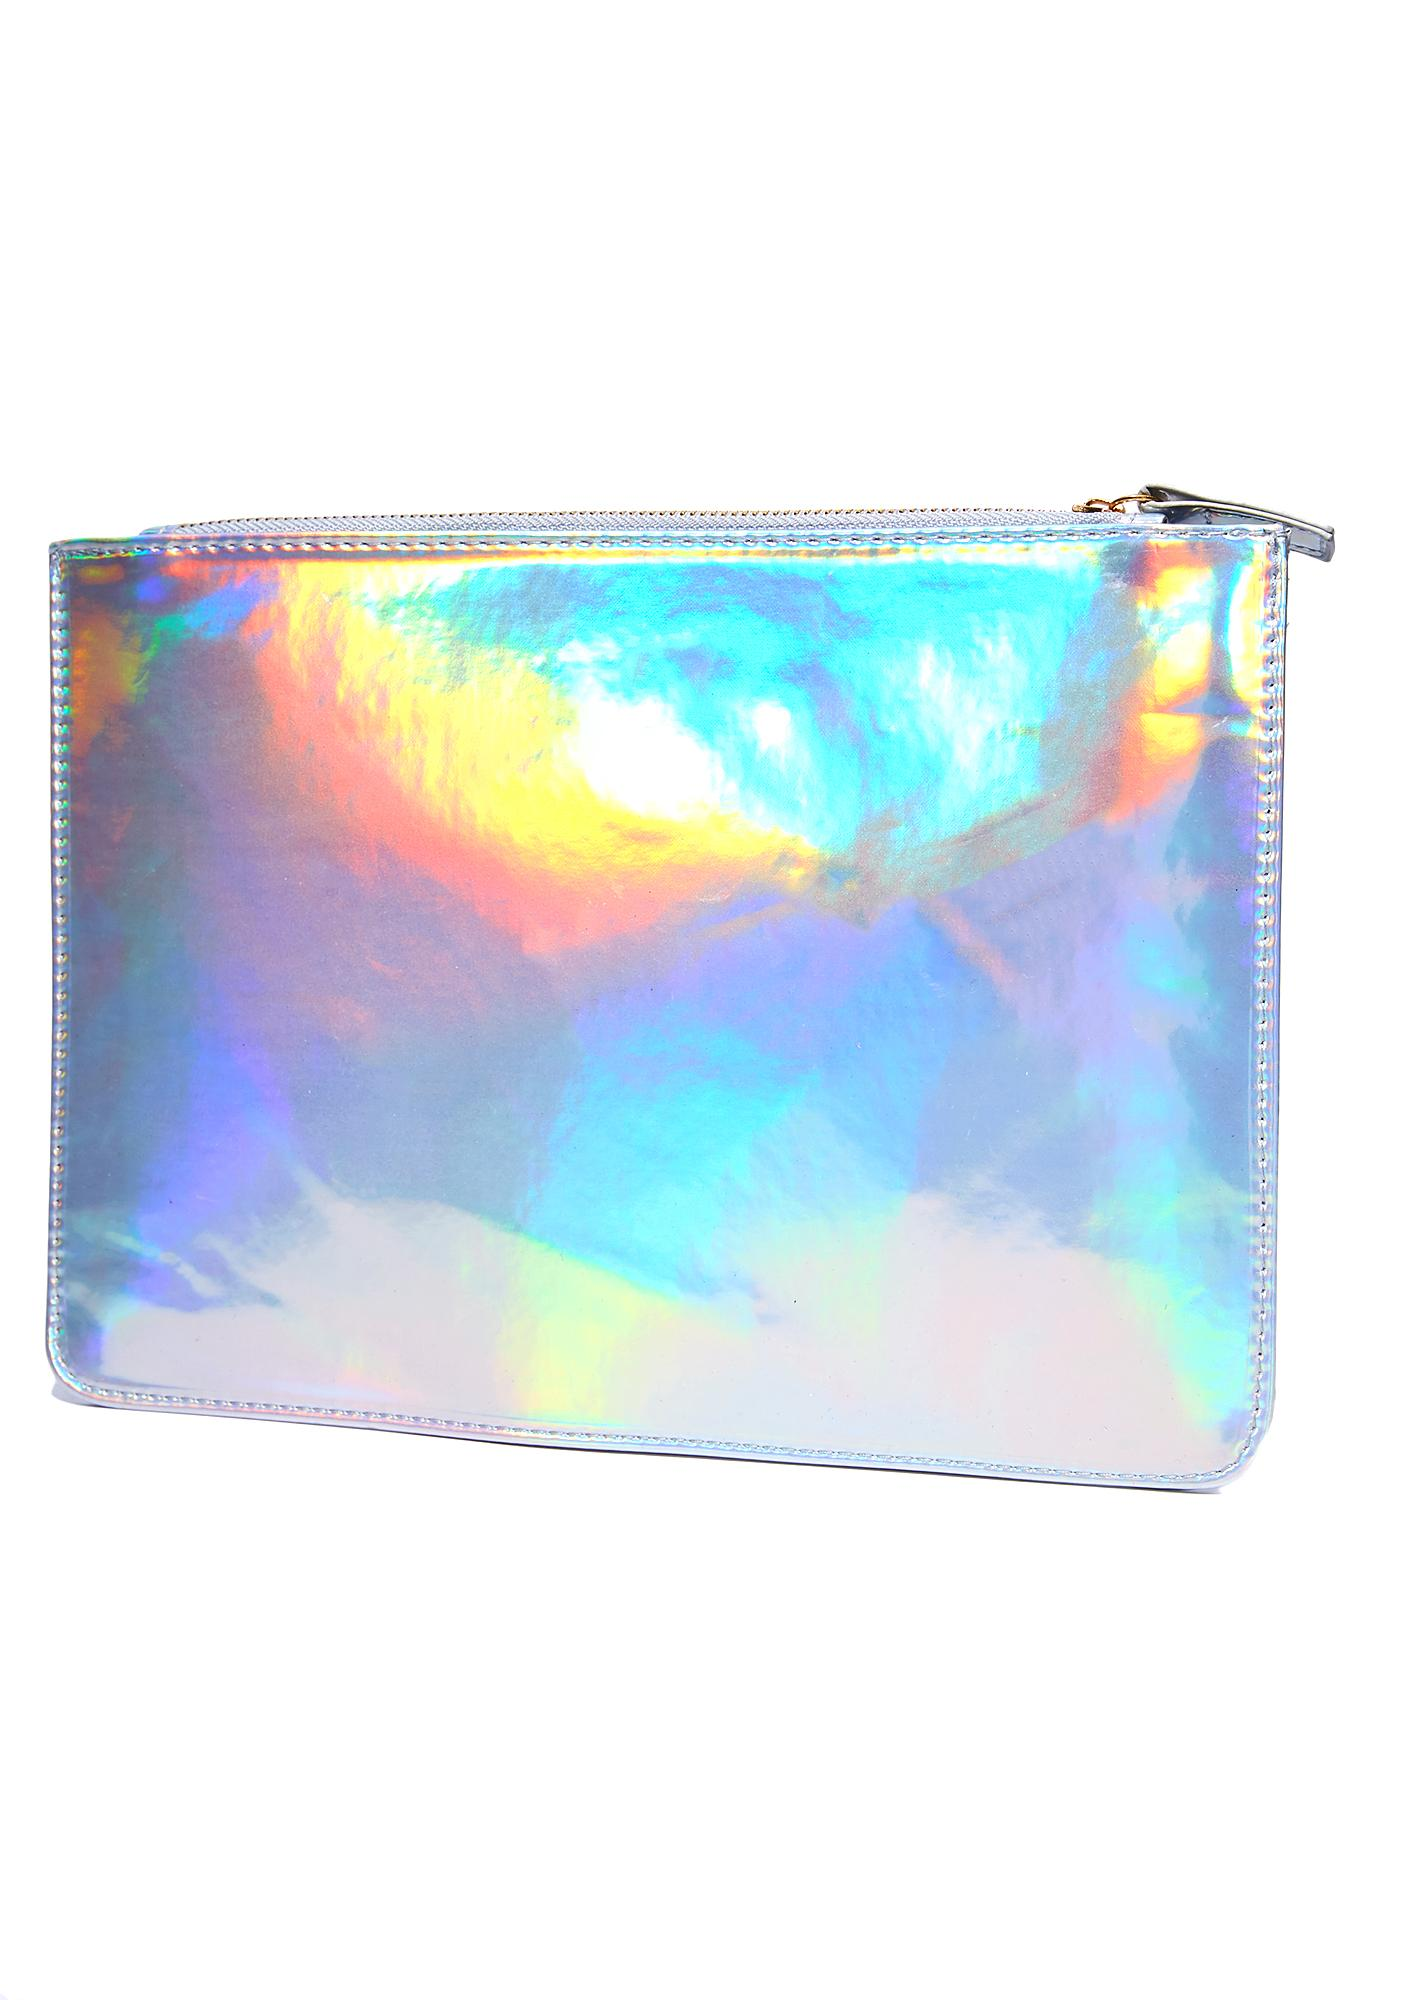 Asteroid Dynasty Holographic Clutch